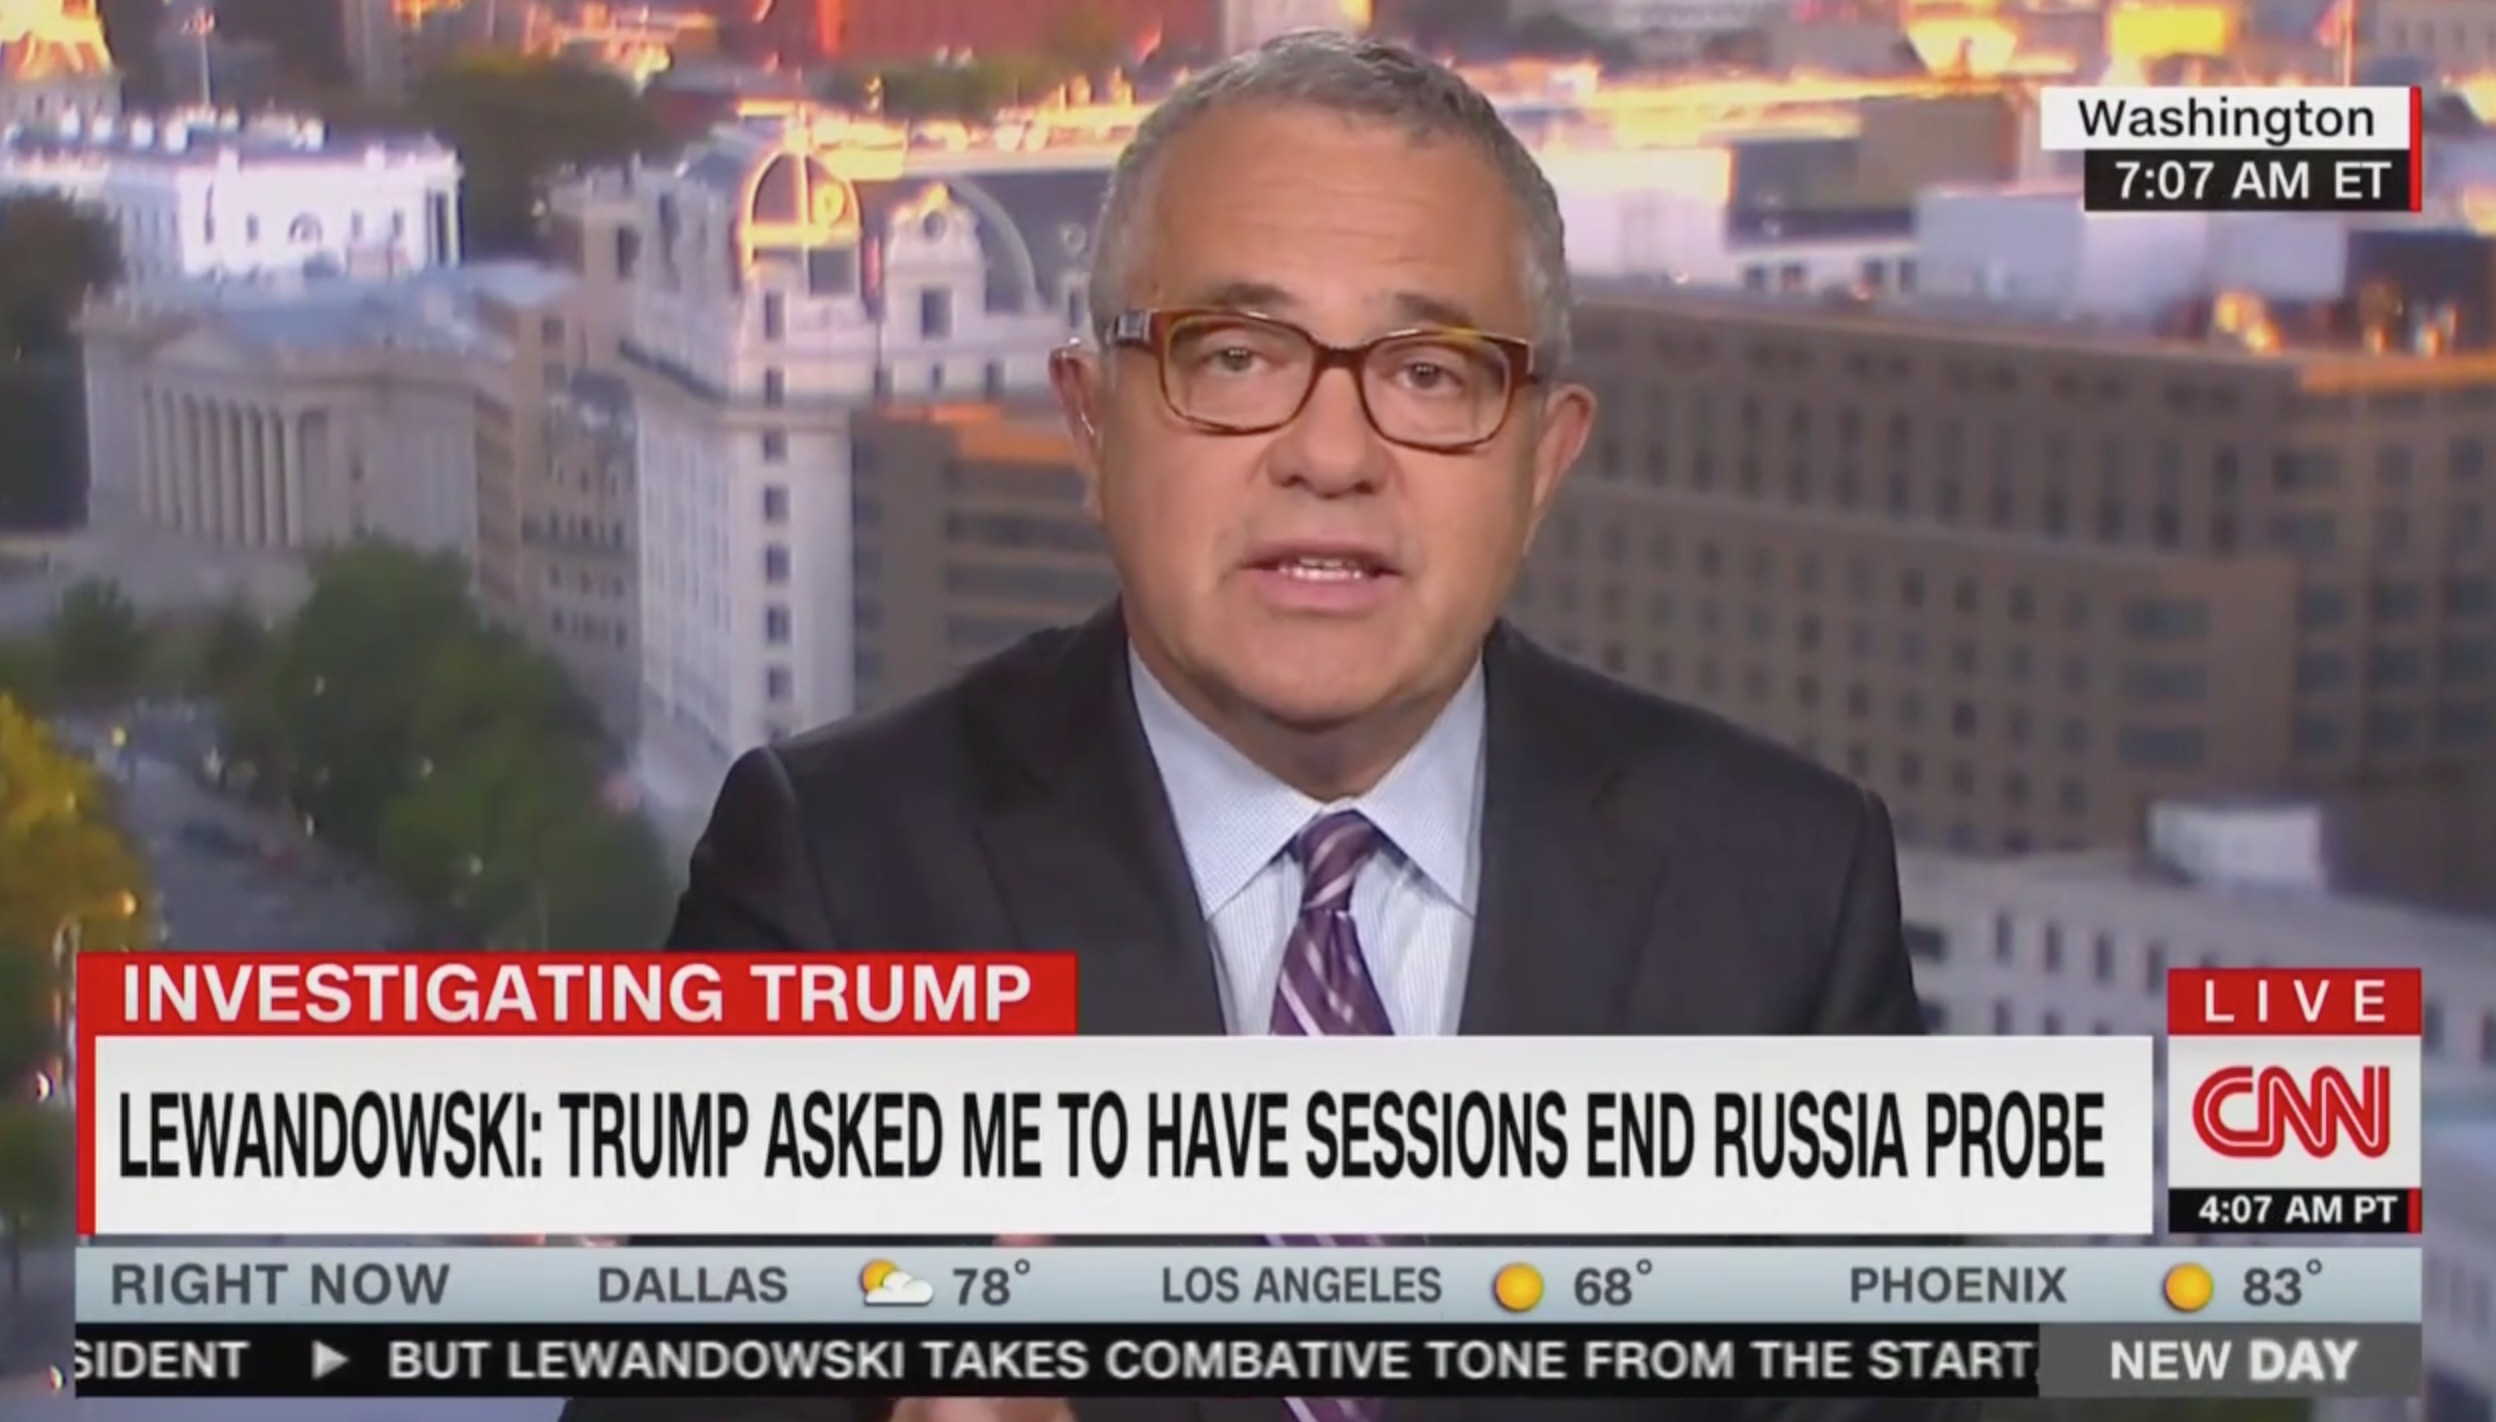 CNN's Jeffrey Toobin: Trump's Orders to Lewandowski 'Clear Evidence of Obstruction' and Corey 'Knew It'